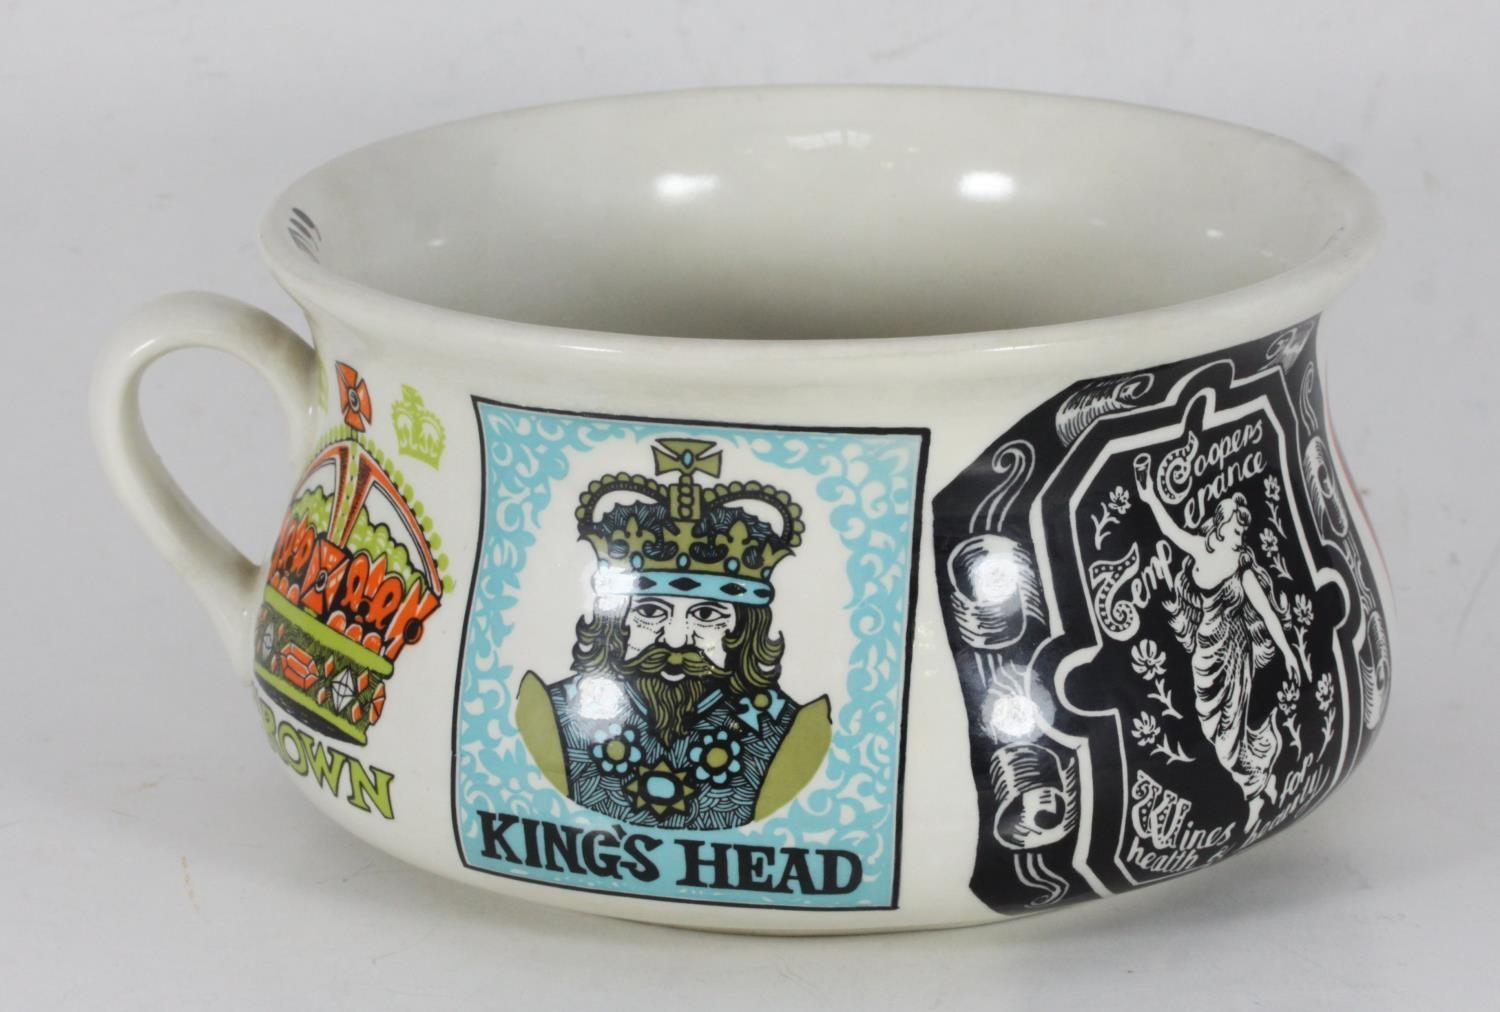 Lot 171 - Tommy Cooper Interest. A one-off personalised Portmeirion Pottery chamber pot reputably given to